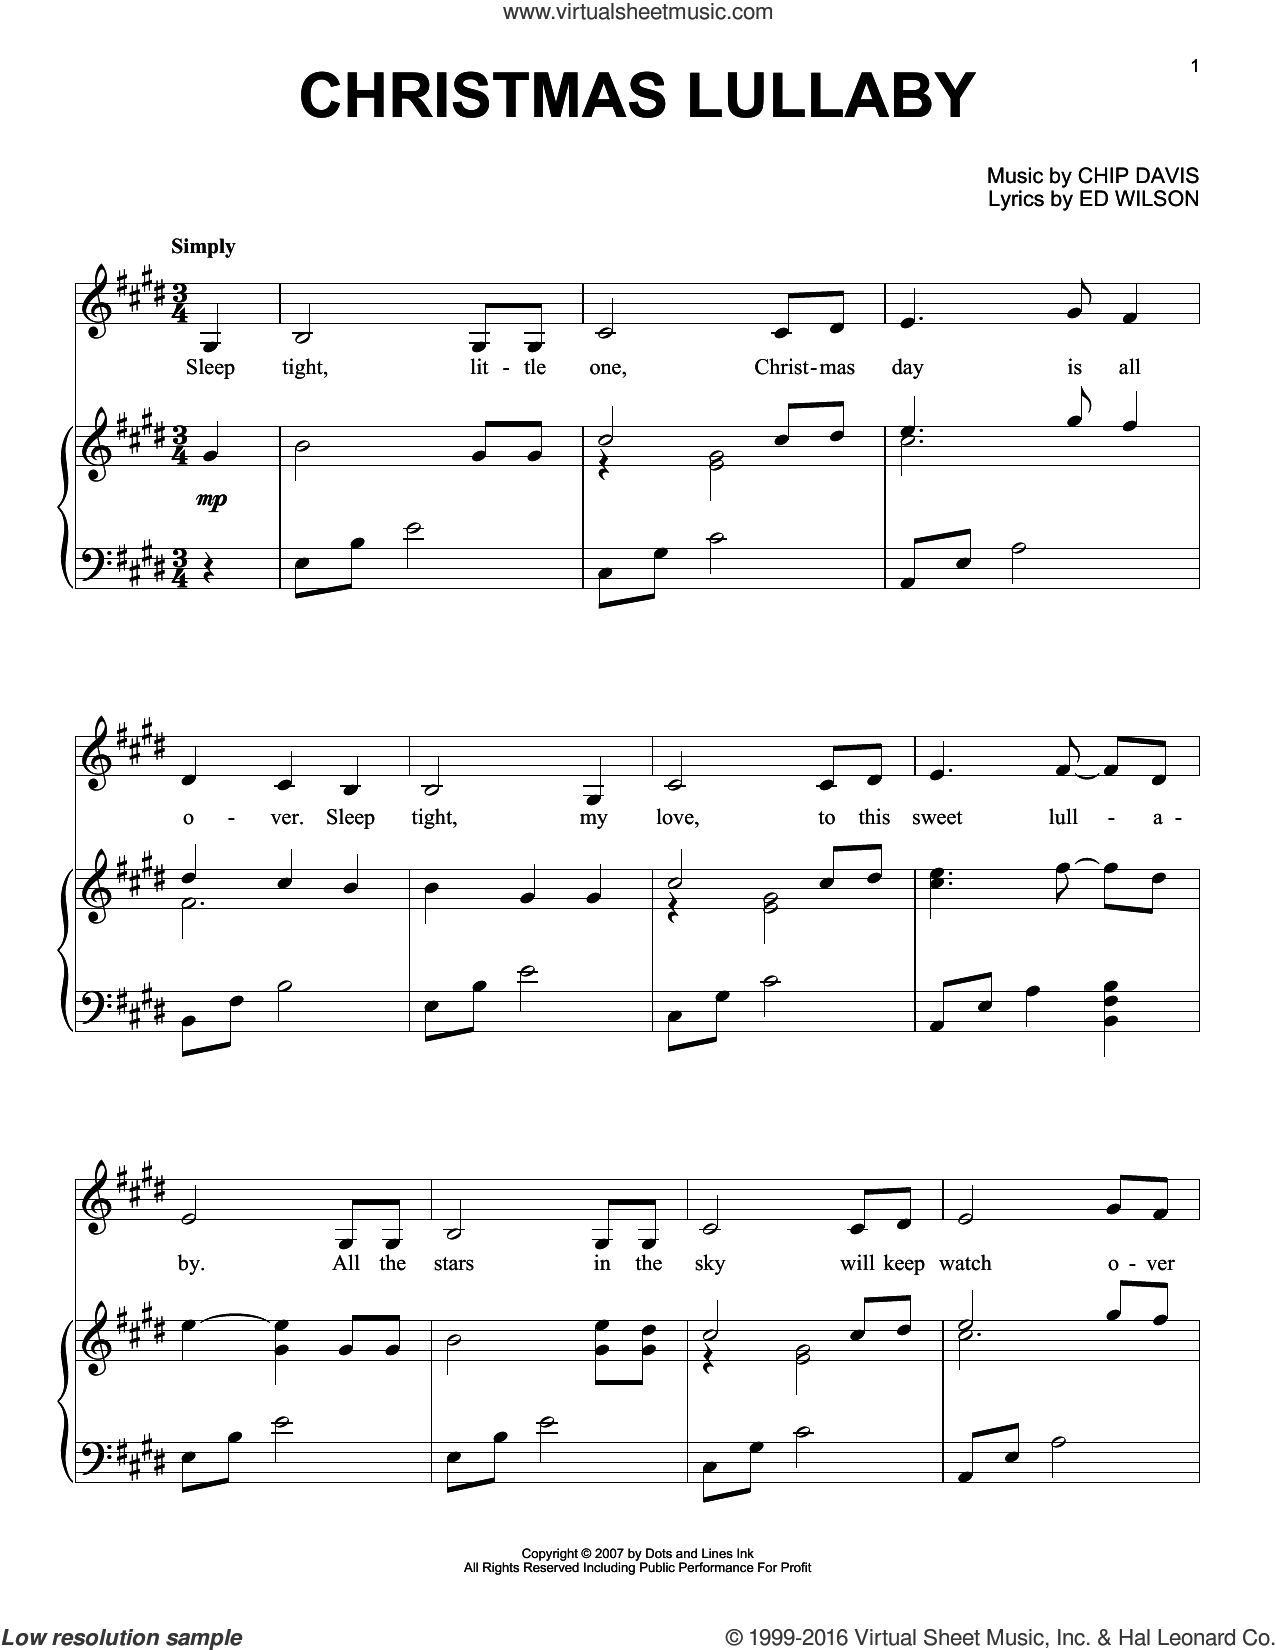 Christmas Lullaby sheet music for piano solo by Ed Wilson